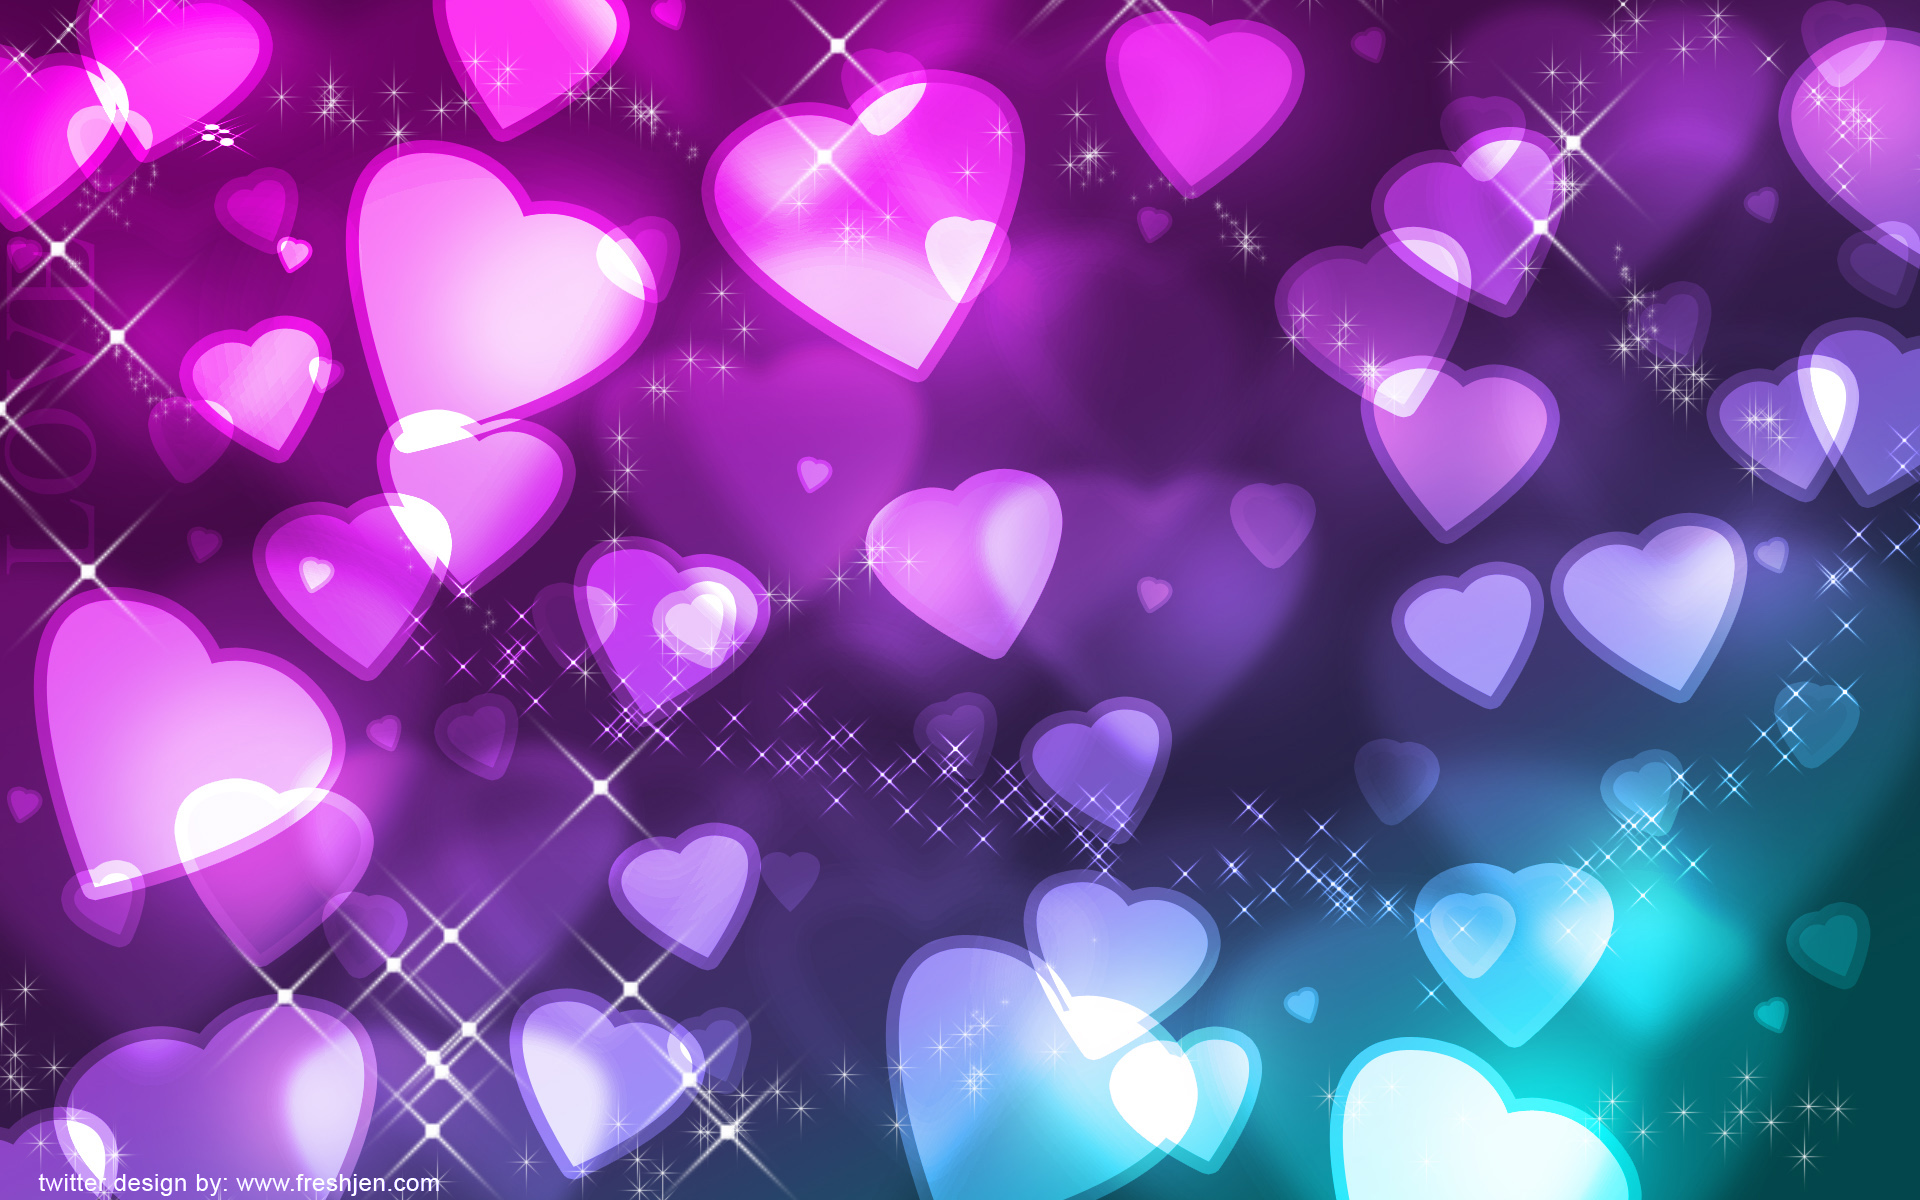 Background Backgrounds Heart Hearts Freshjen wallpapers HD 1920x1200